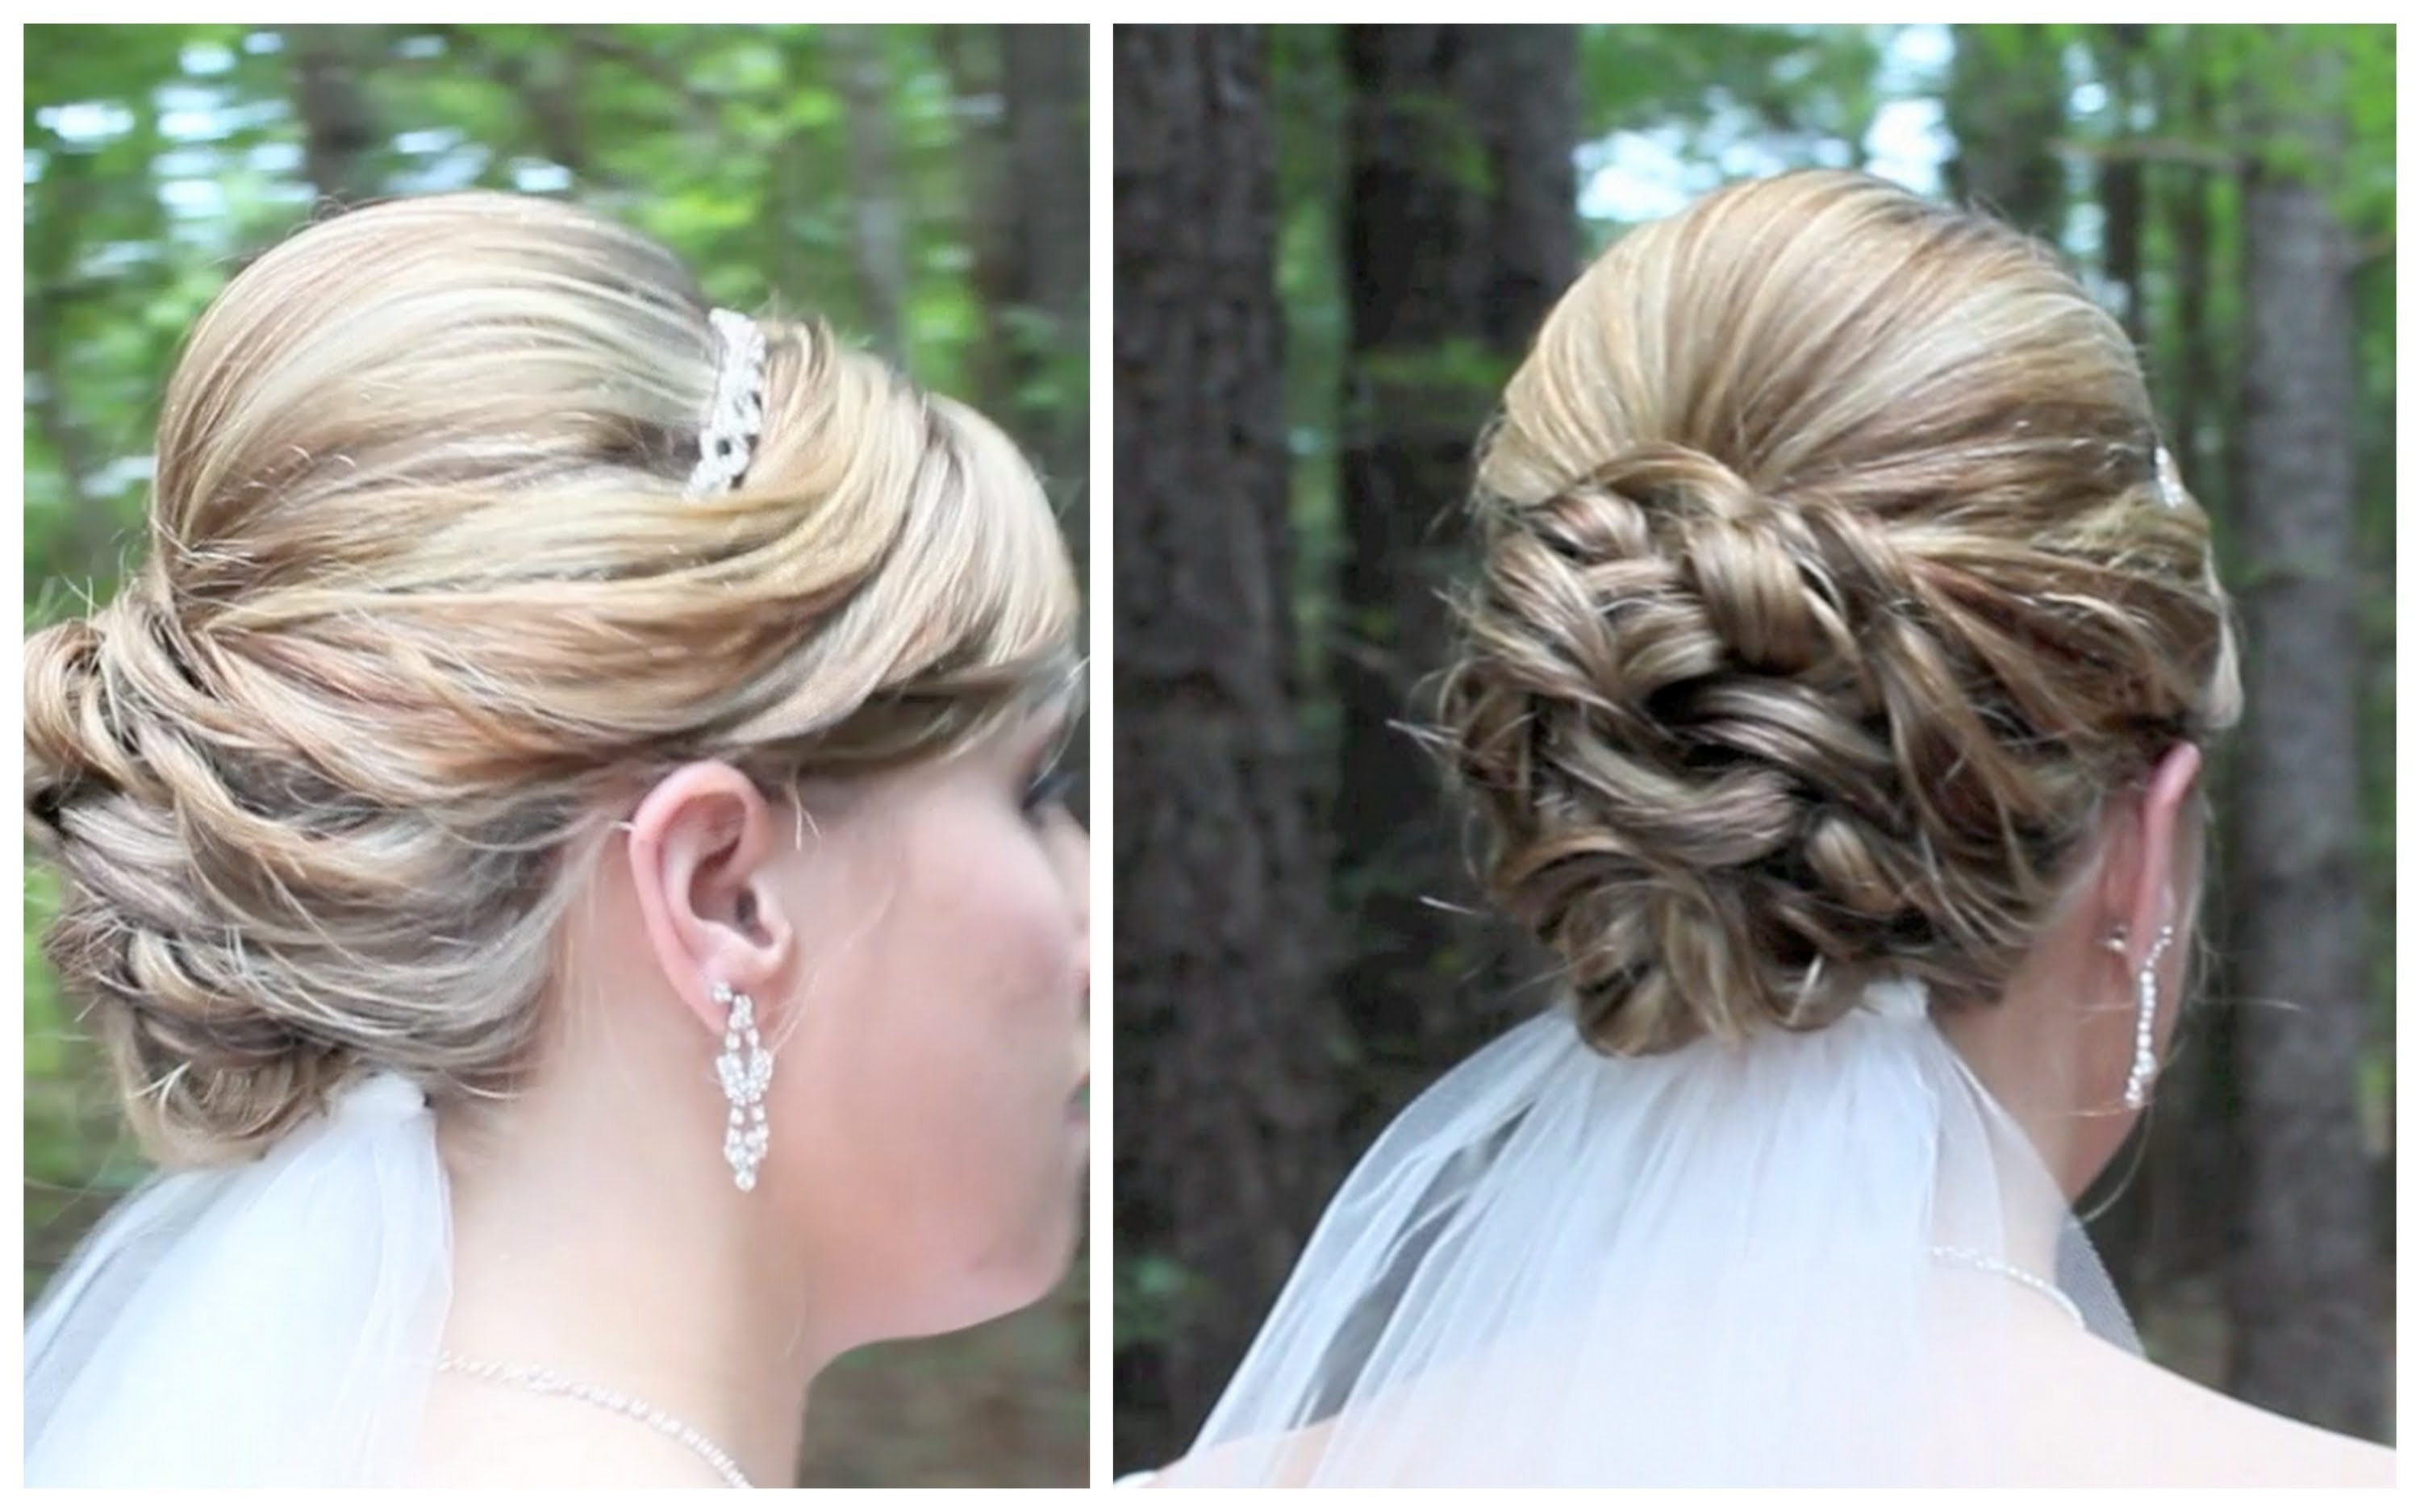 Bridal Updo On Shoulder Length Hair – Youtube With Regard To Updo Hairstyles For Weddings (View 8 of 15)